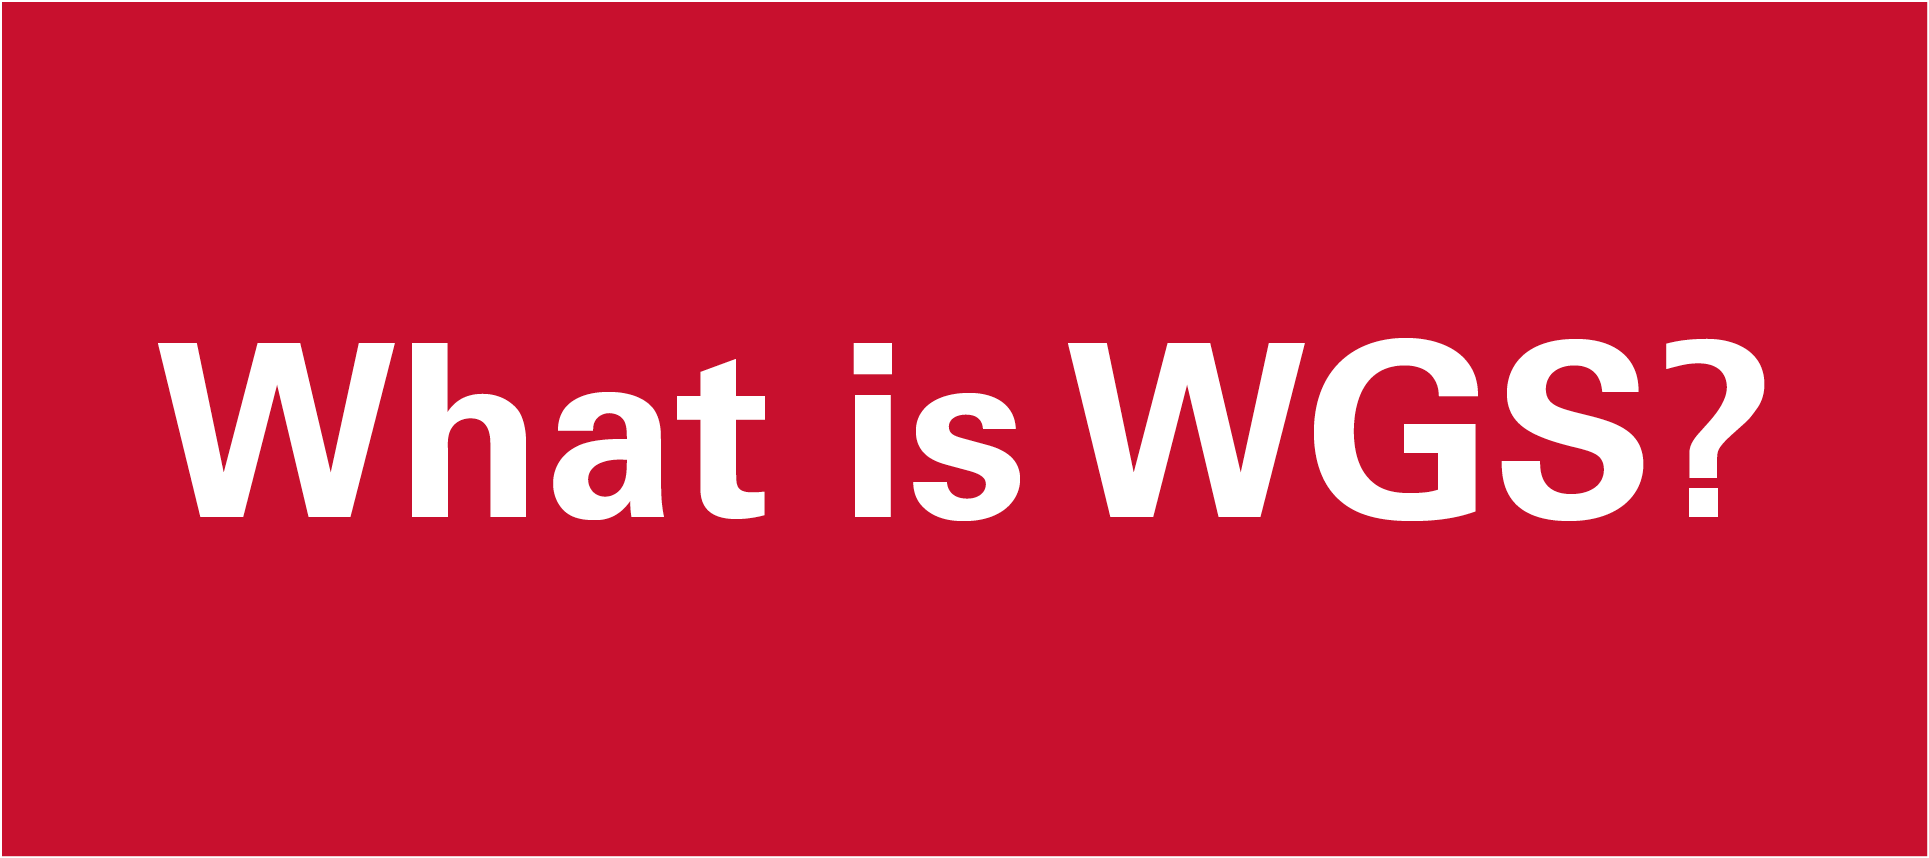 What is WGS?